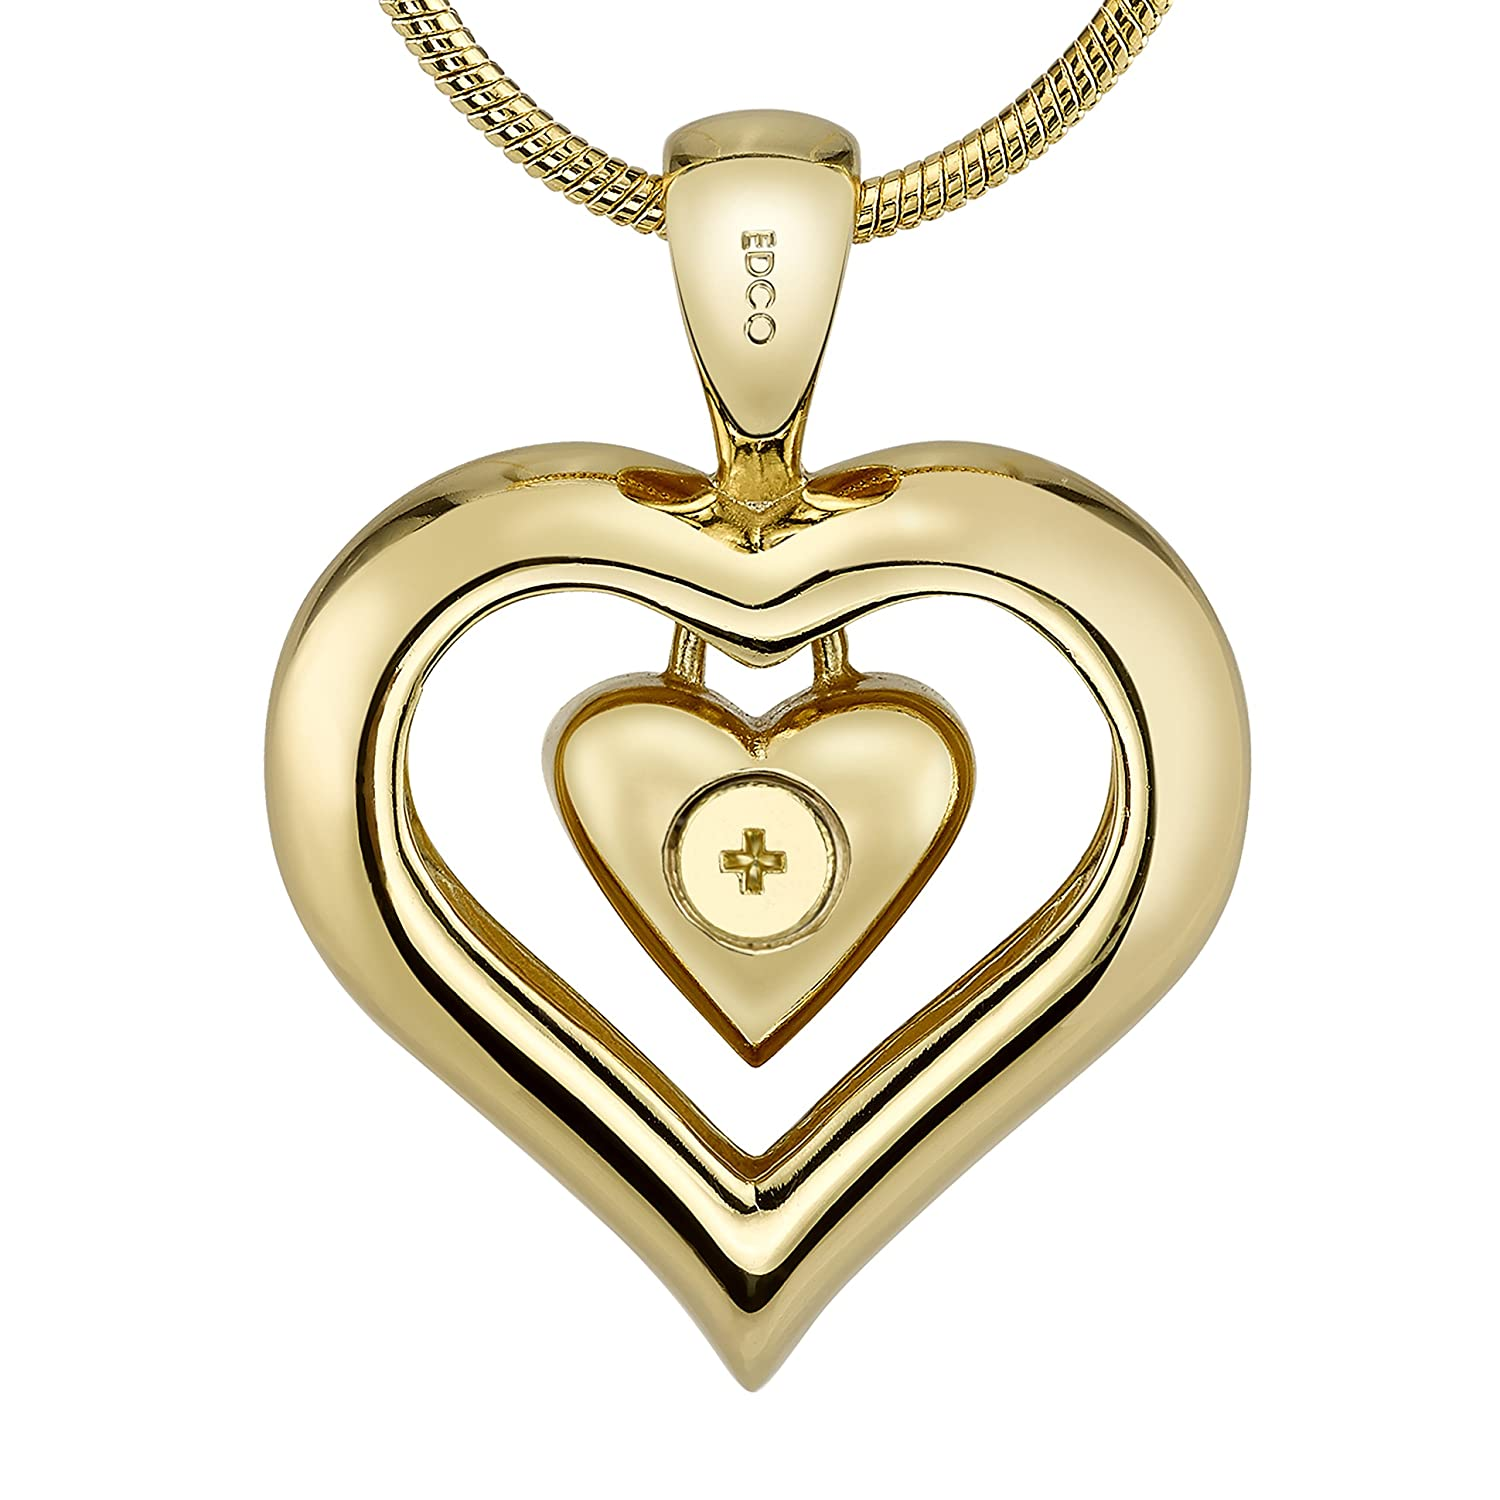 heart keepsake jewelry mom memorial cremation store ashes gold urn shaped pendant in product necklace diamond